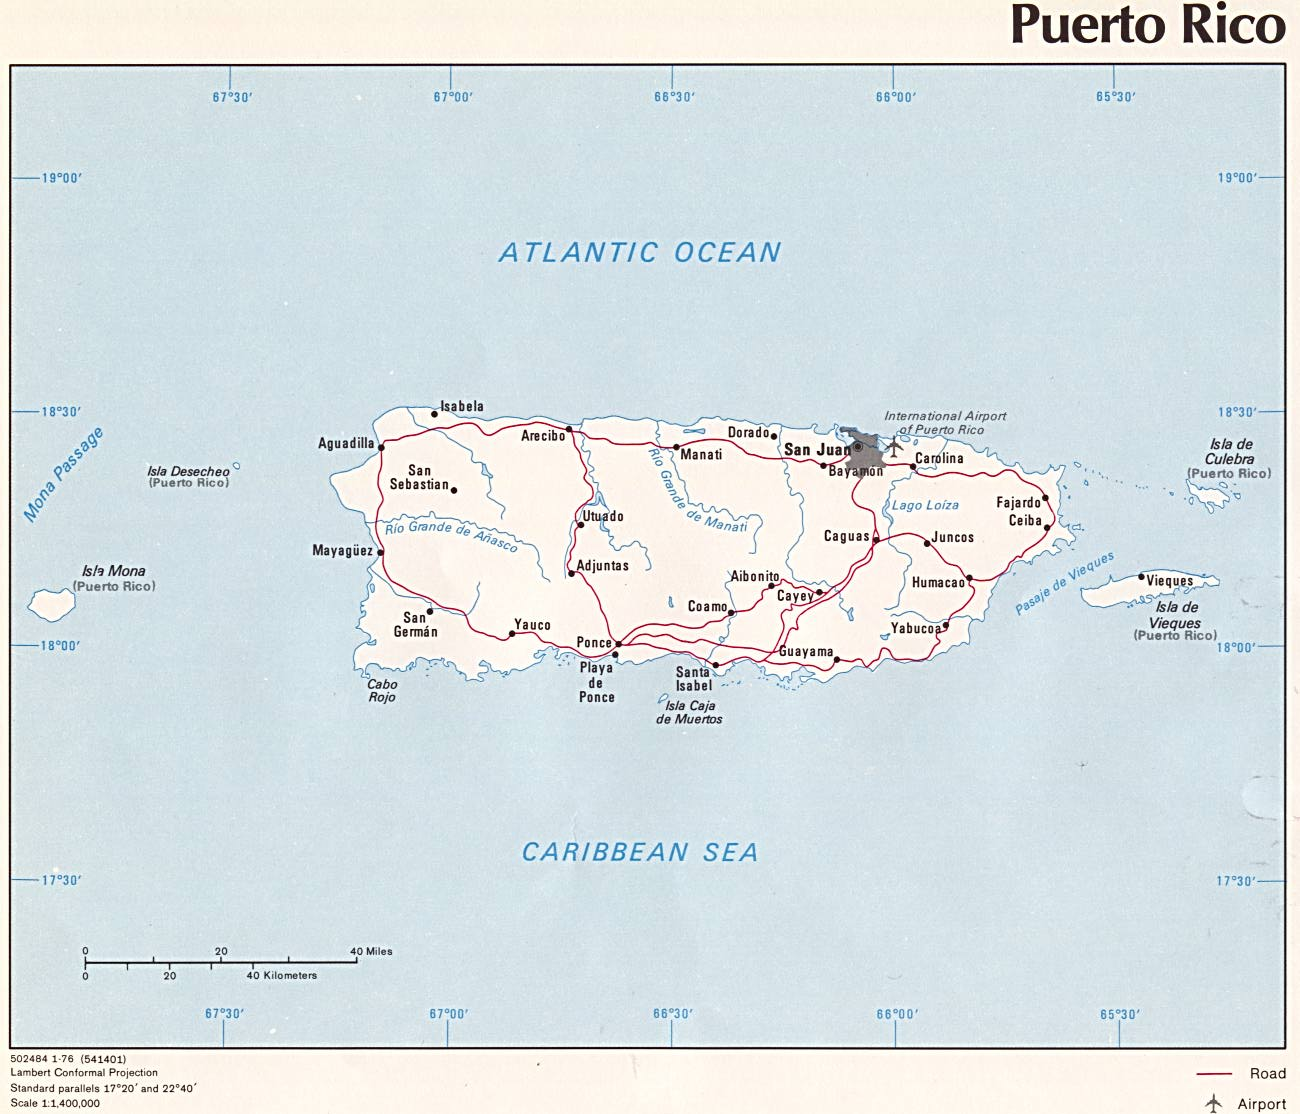 American Red Cross Maps And Graphics - Puerto rico cities towns map